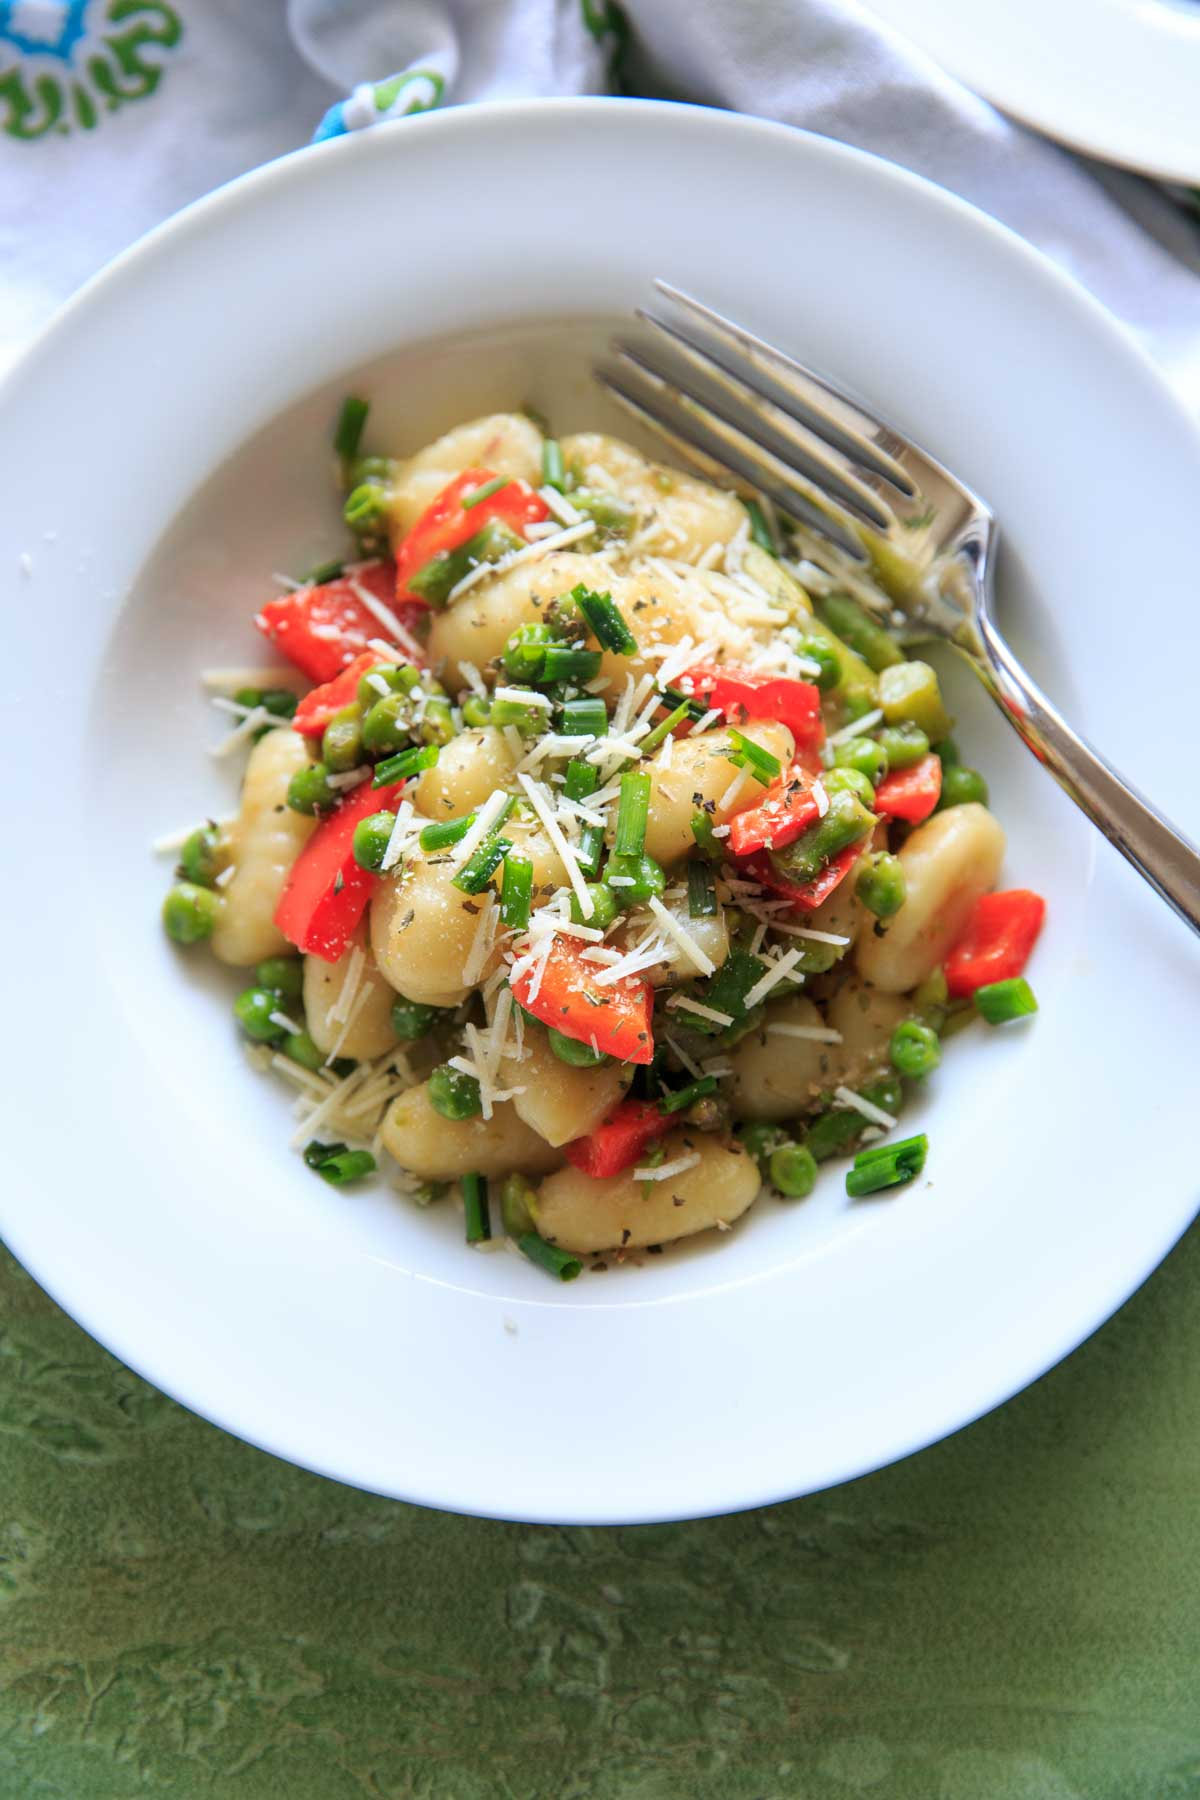 Spring Vegetable Gnocchi with asparagus, peas and herbs. Option to add a touch of parmesan cheese or leave off to keep it vegan! A delicious and fresh tasting pasta dish that's not too heavy and loaded with veggies.